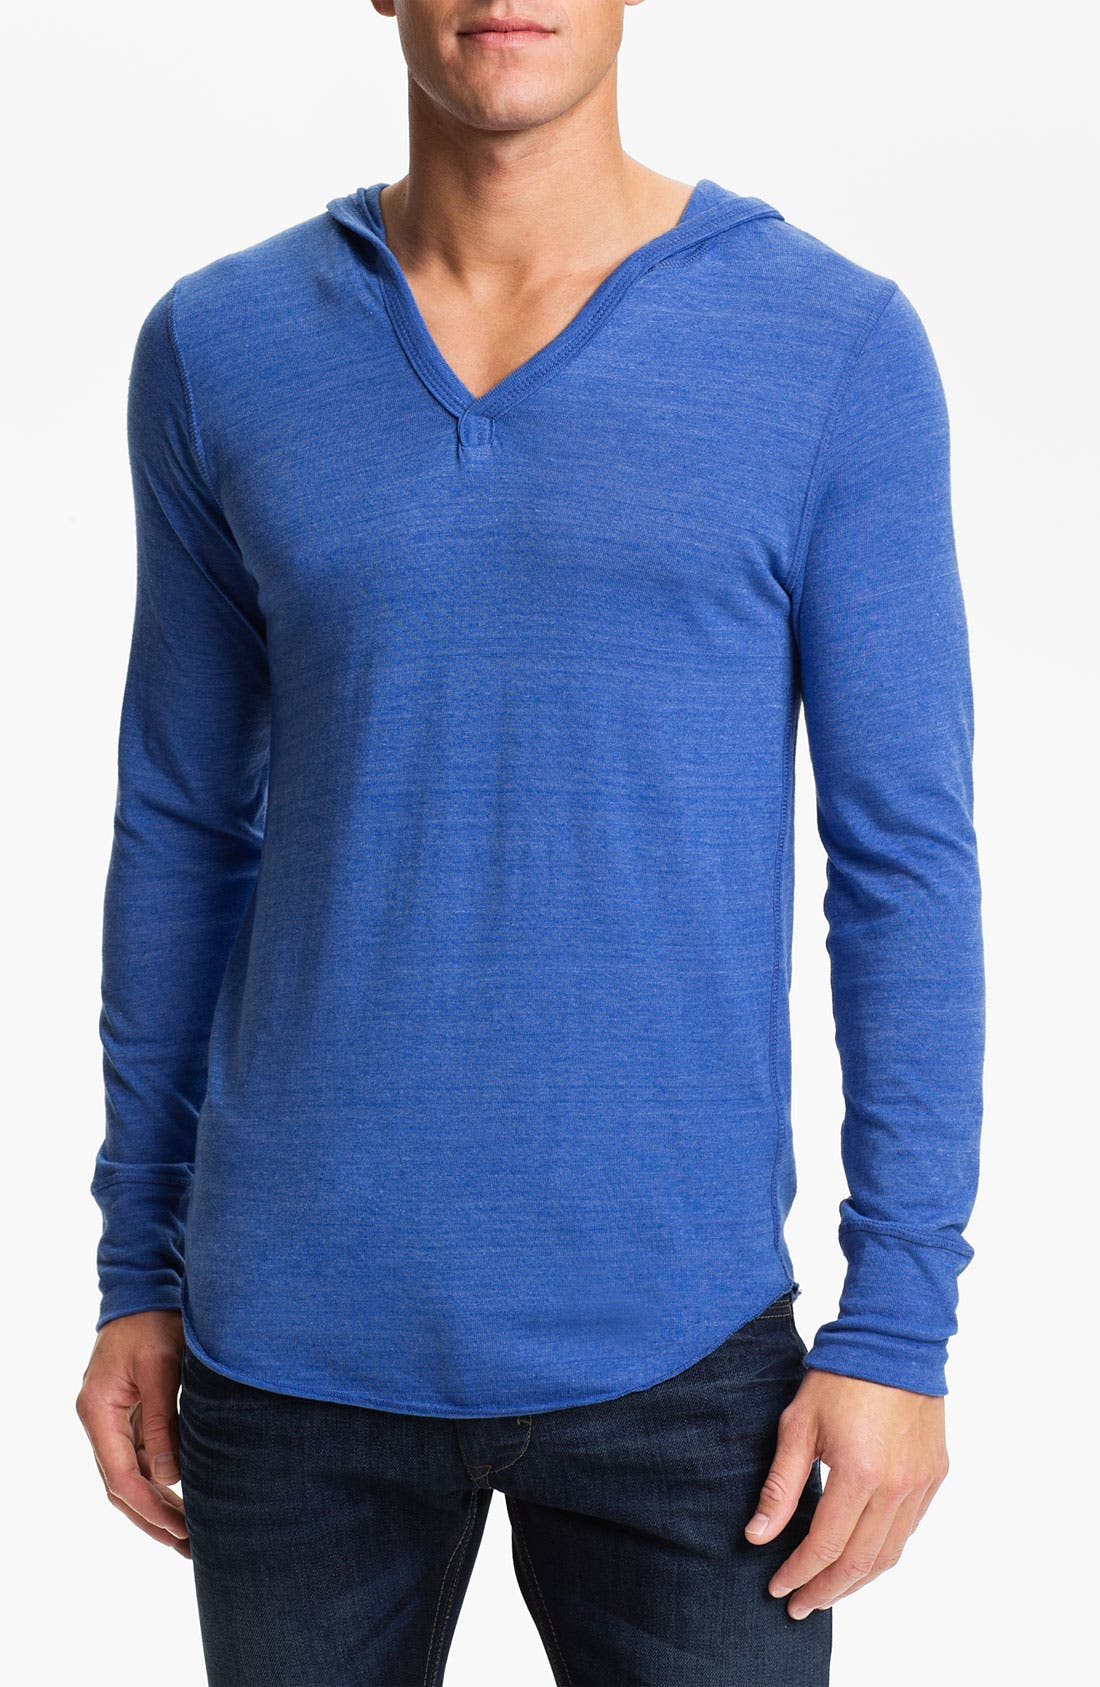 Main Image - Alternative Heathered Pullover